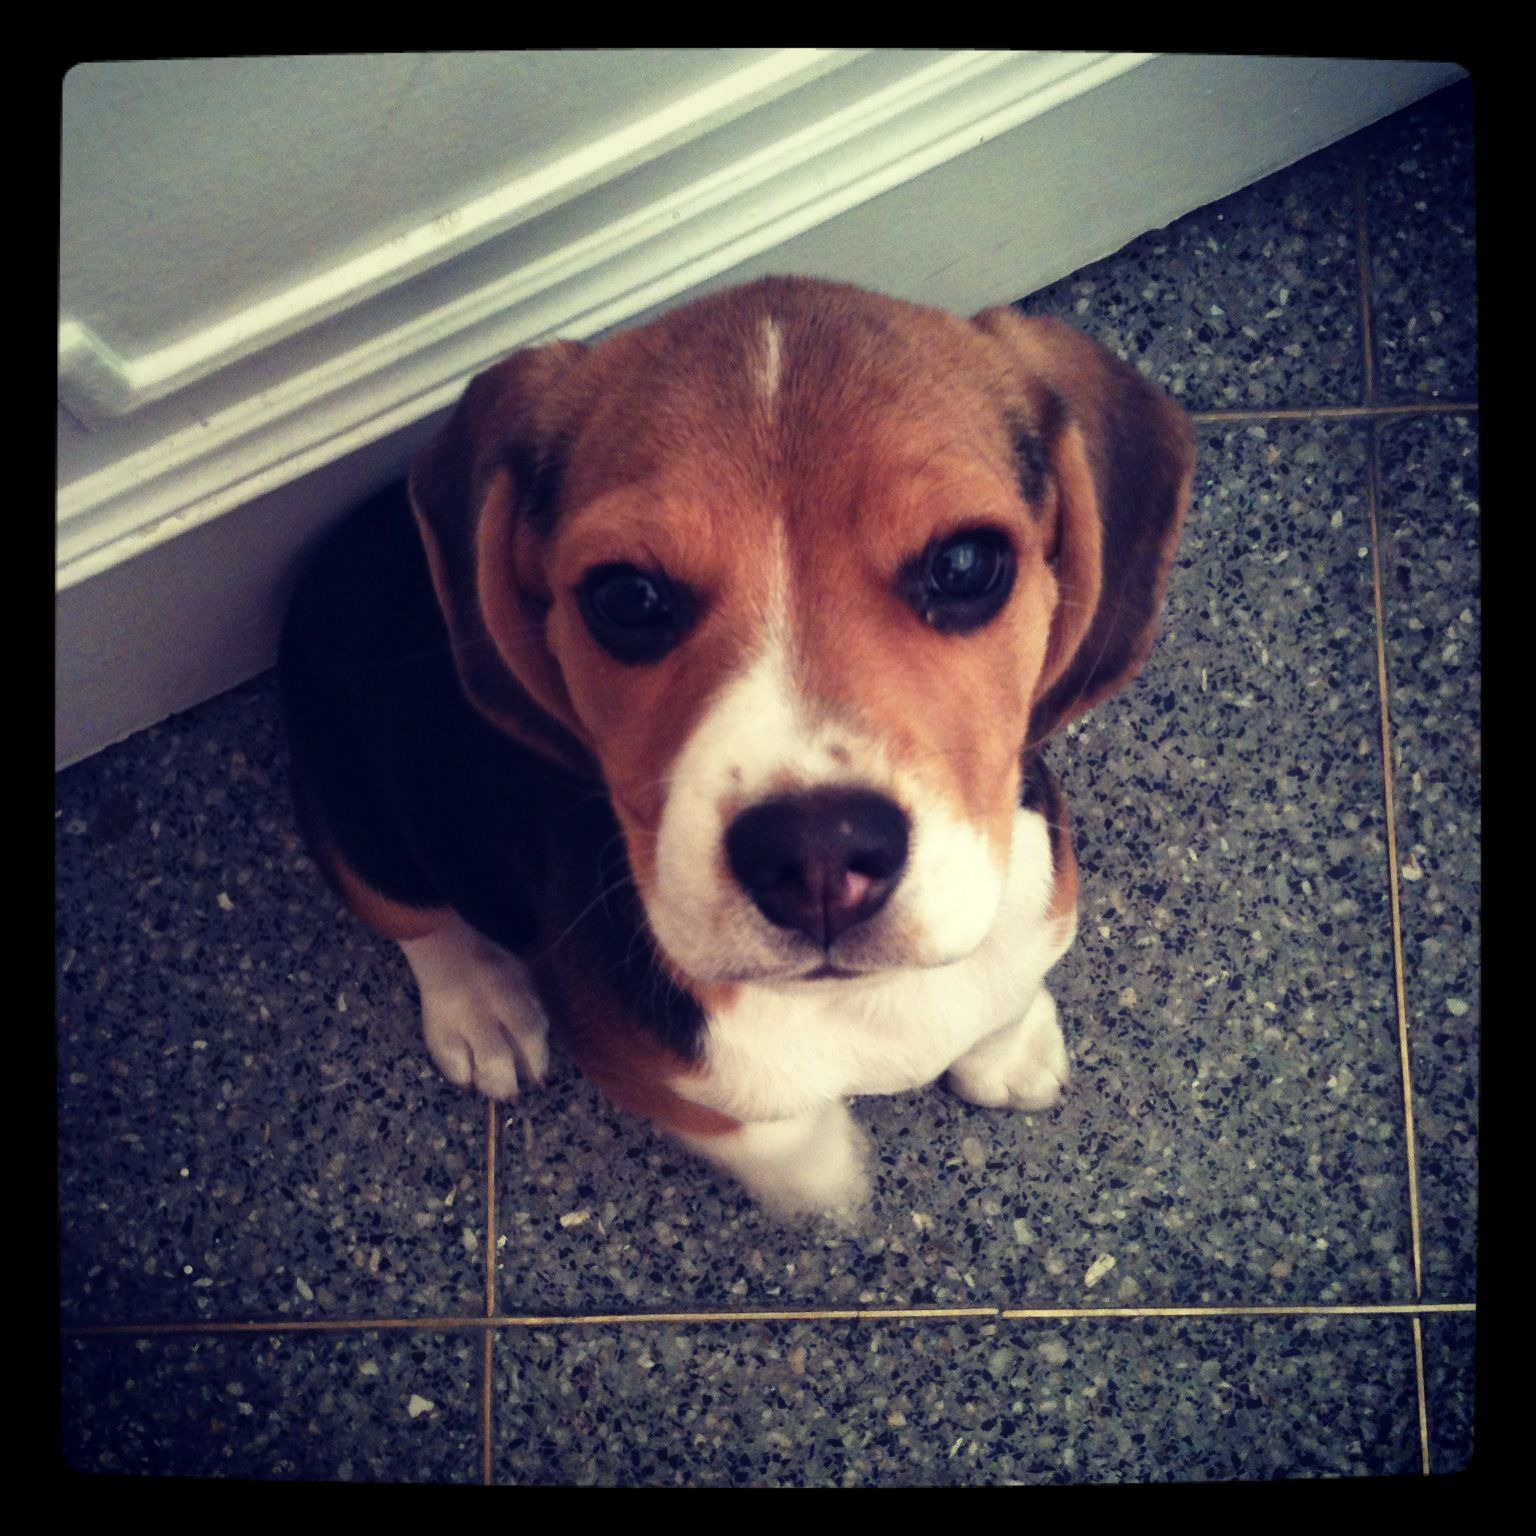 This Is My Gorgeous Beagle Puppy His Name Is Comezon In English